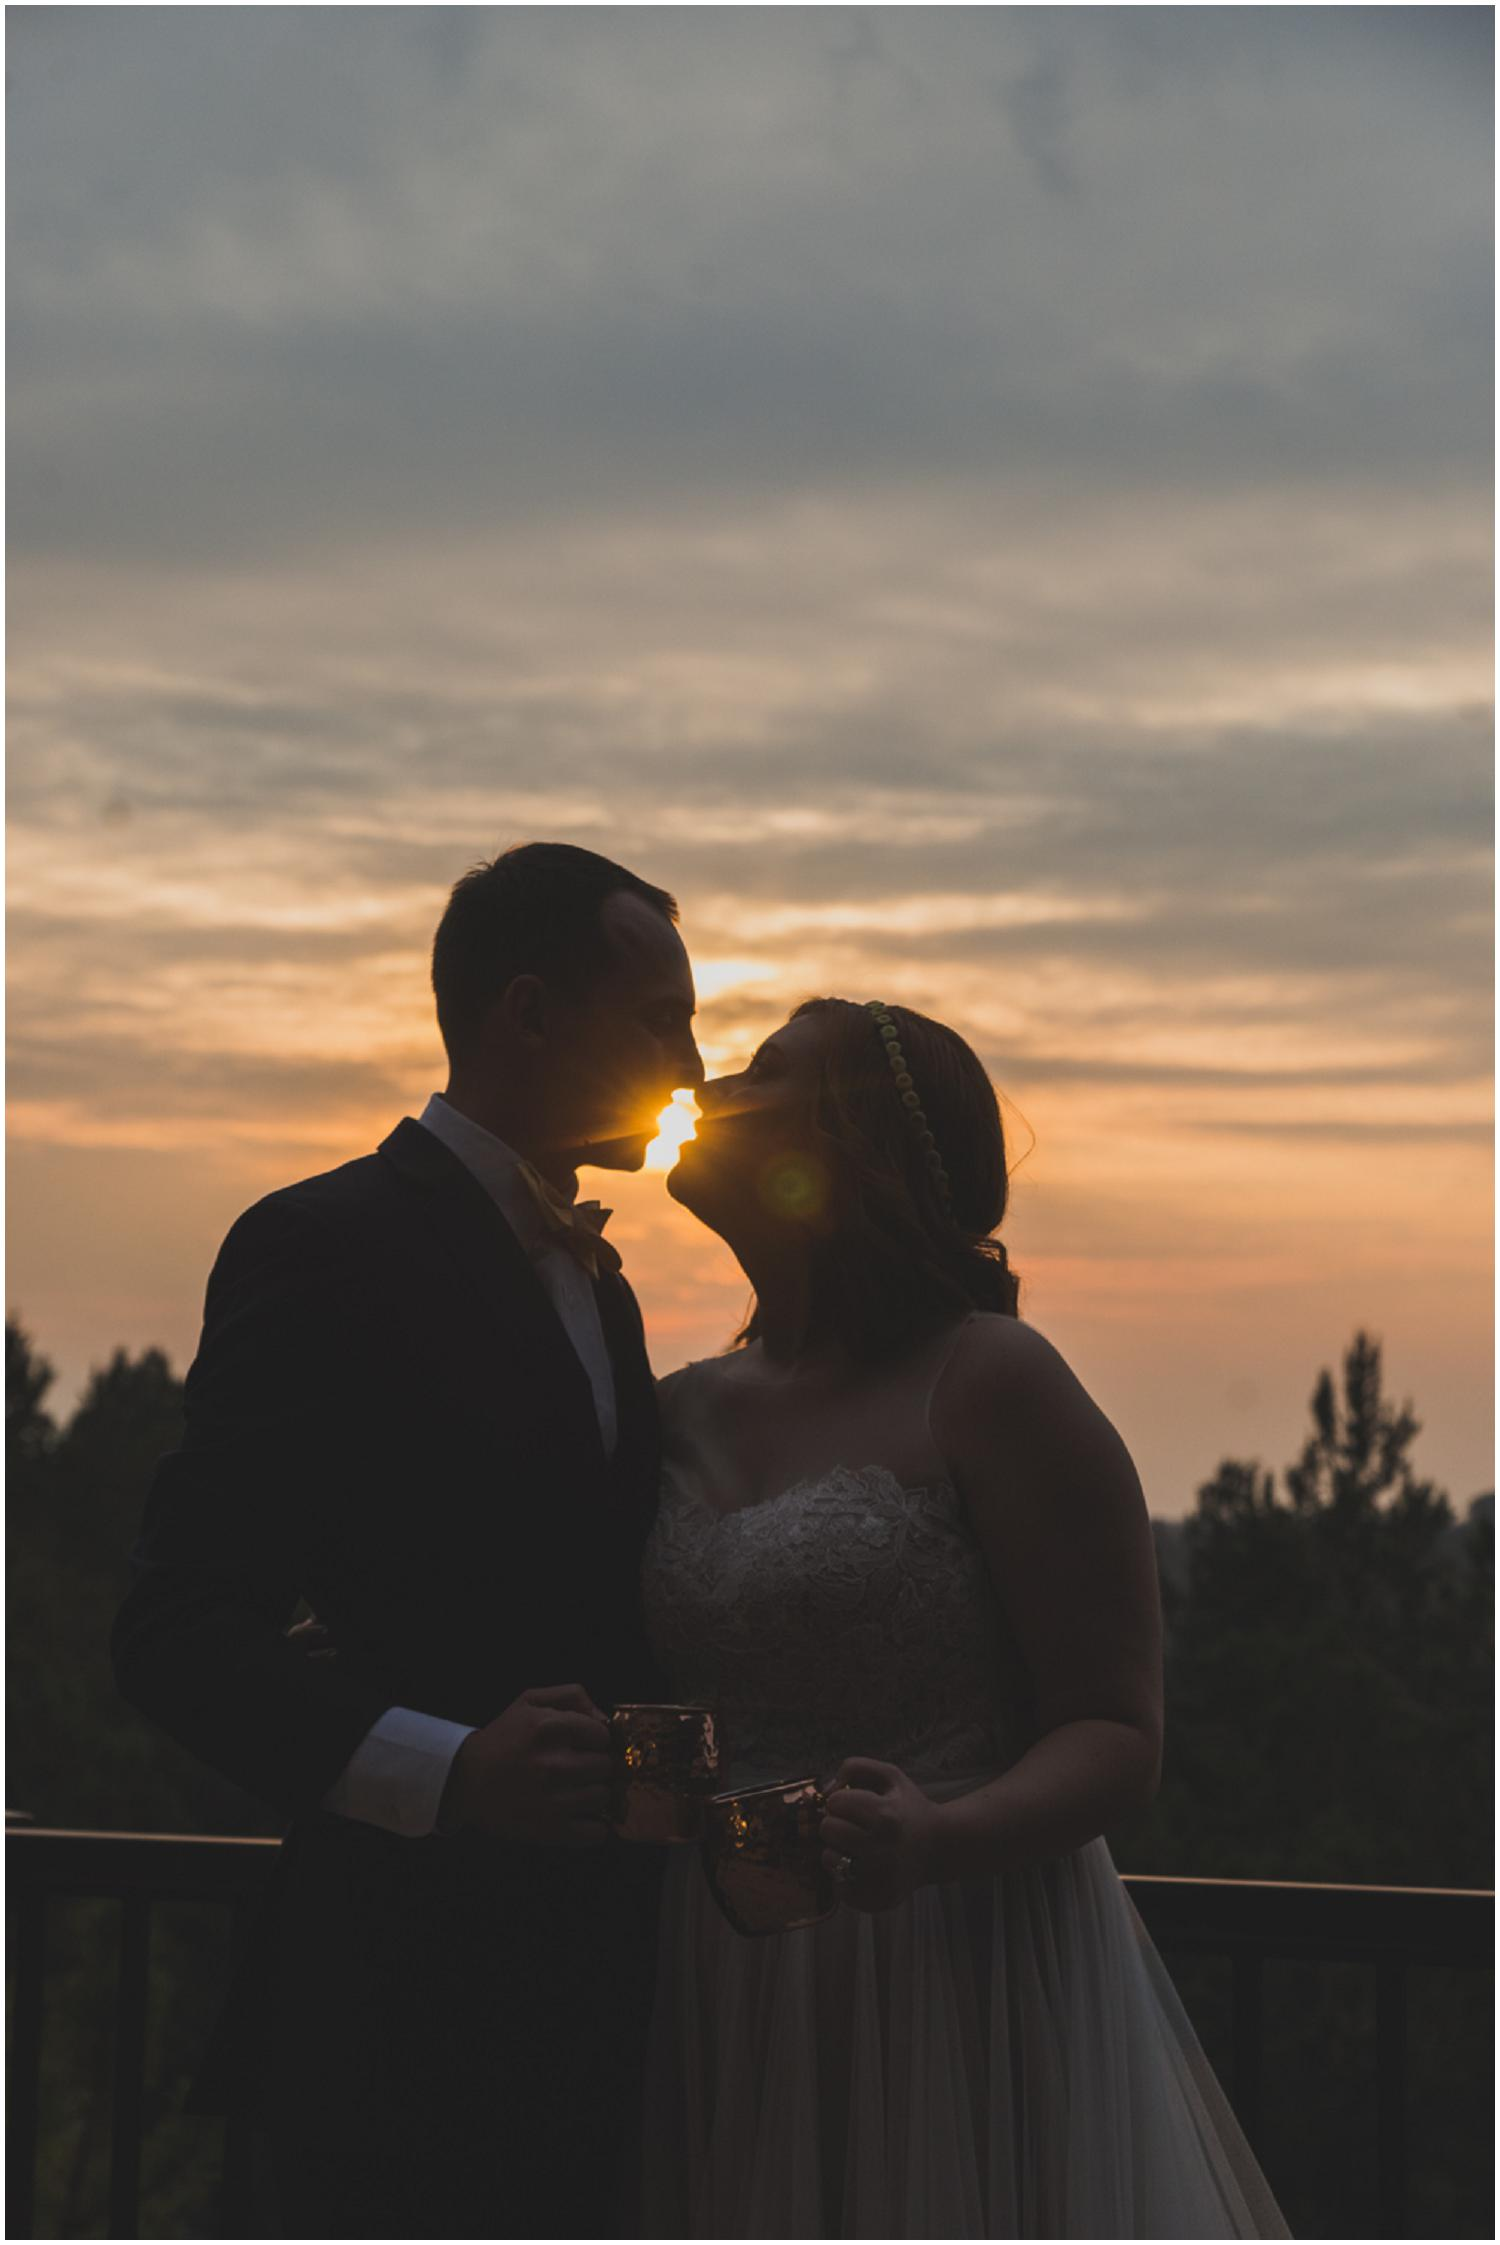 silhouette of bride and groom enjoying a sunset kiss